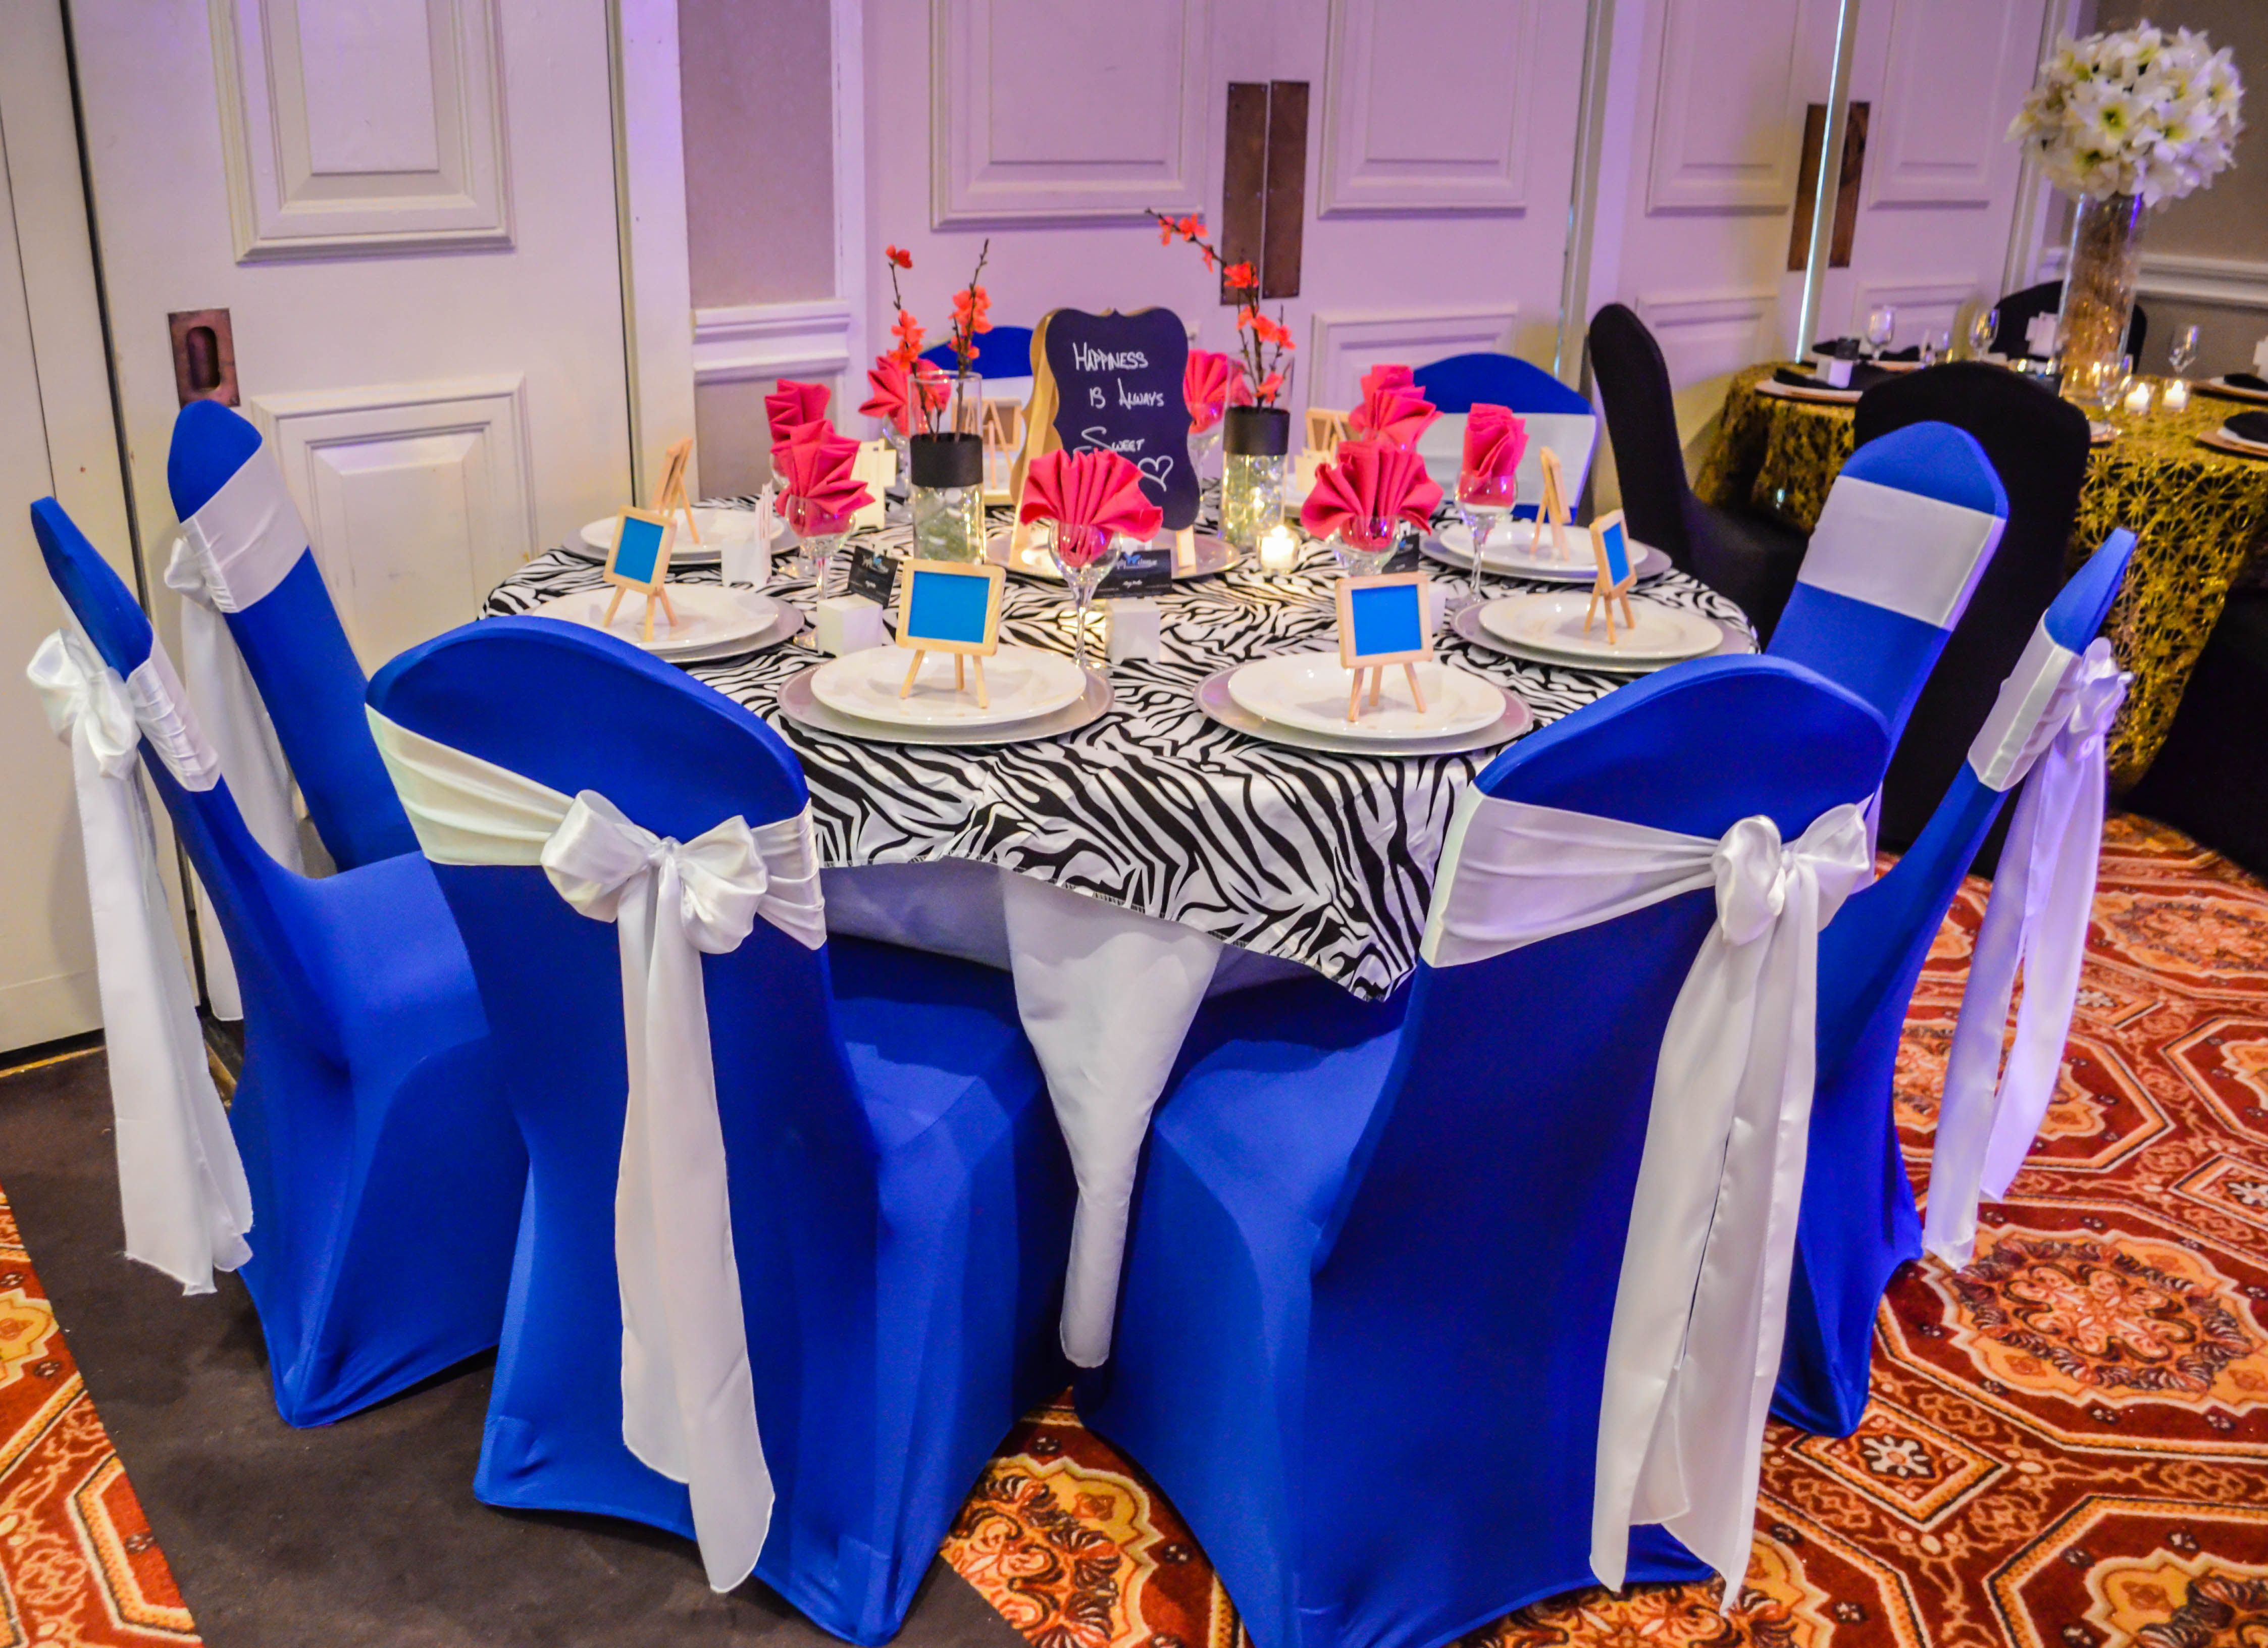 Royal Blue Spandex Chair Covers with White Satin Chair Sashes Zebra